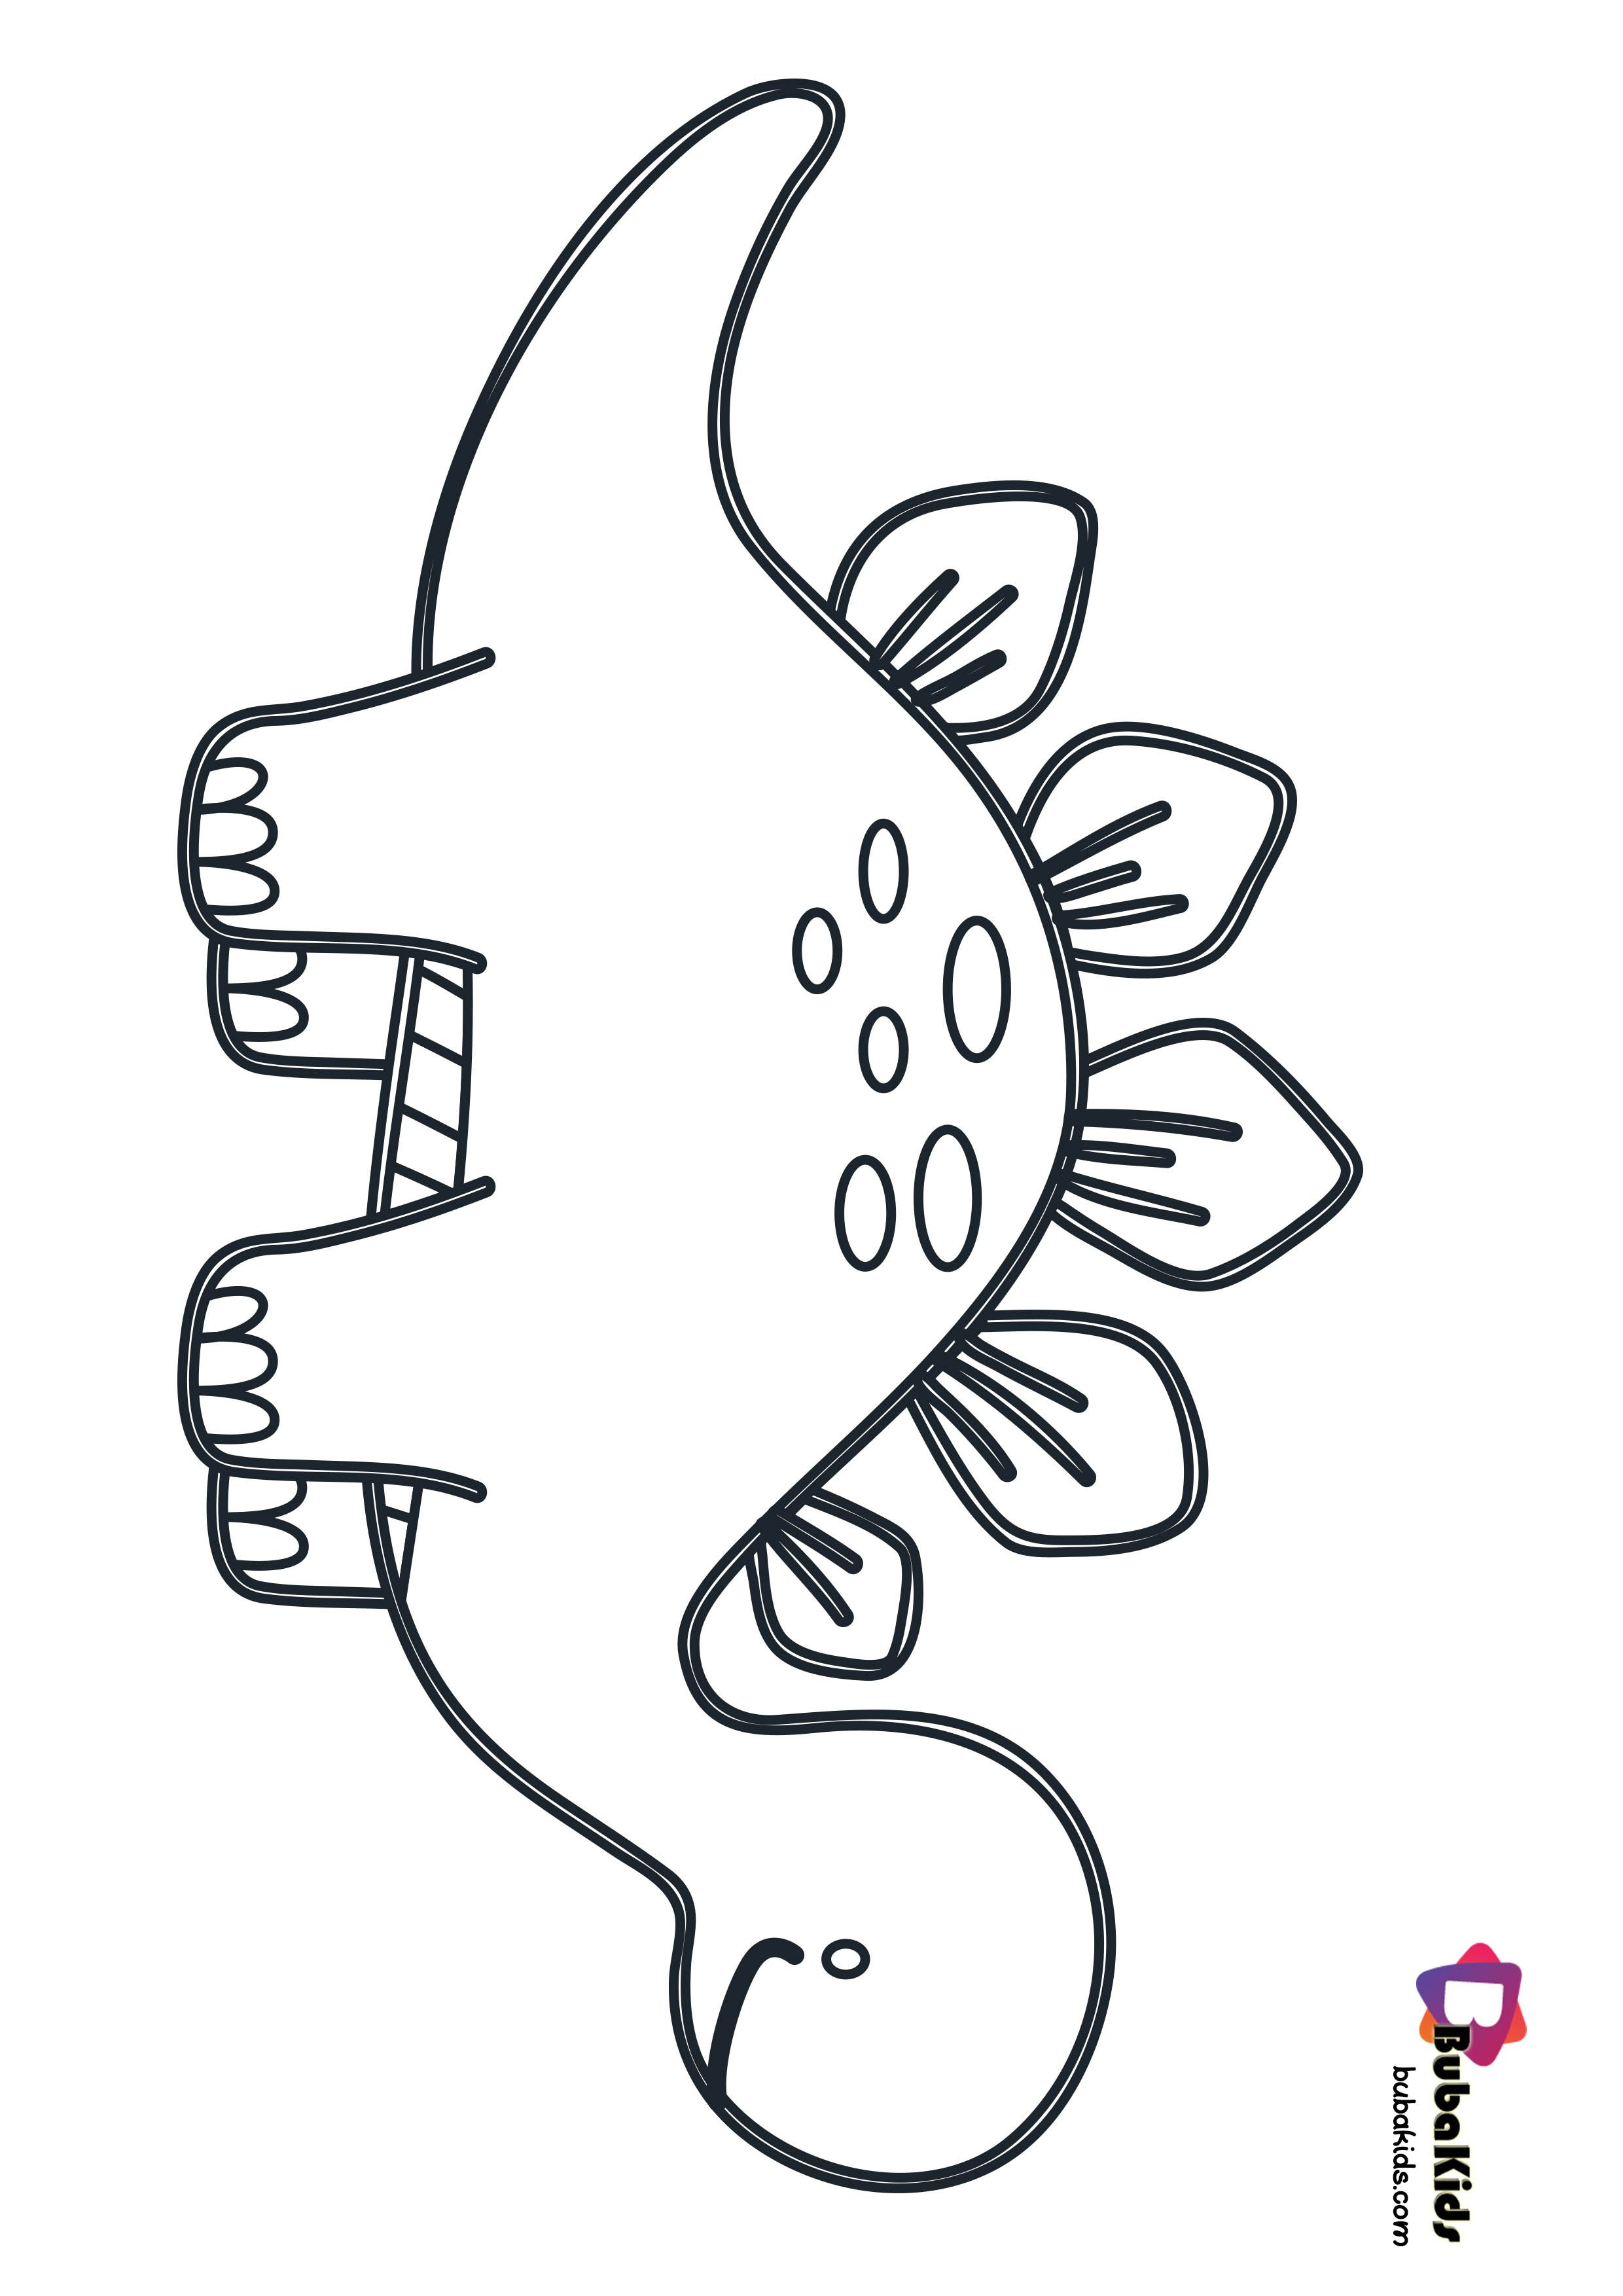 Cute Baby Dinosaurs Coloring Page For Kids Dinosaur Coloring